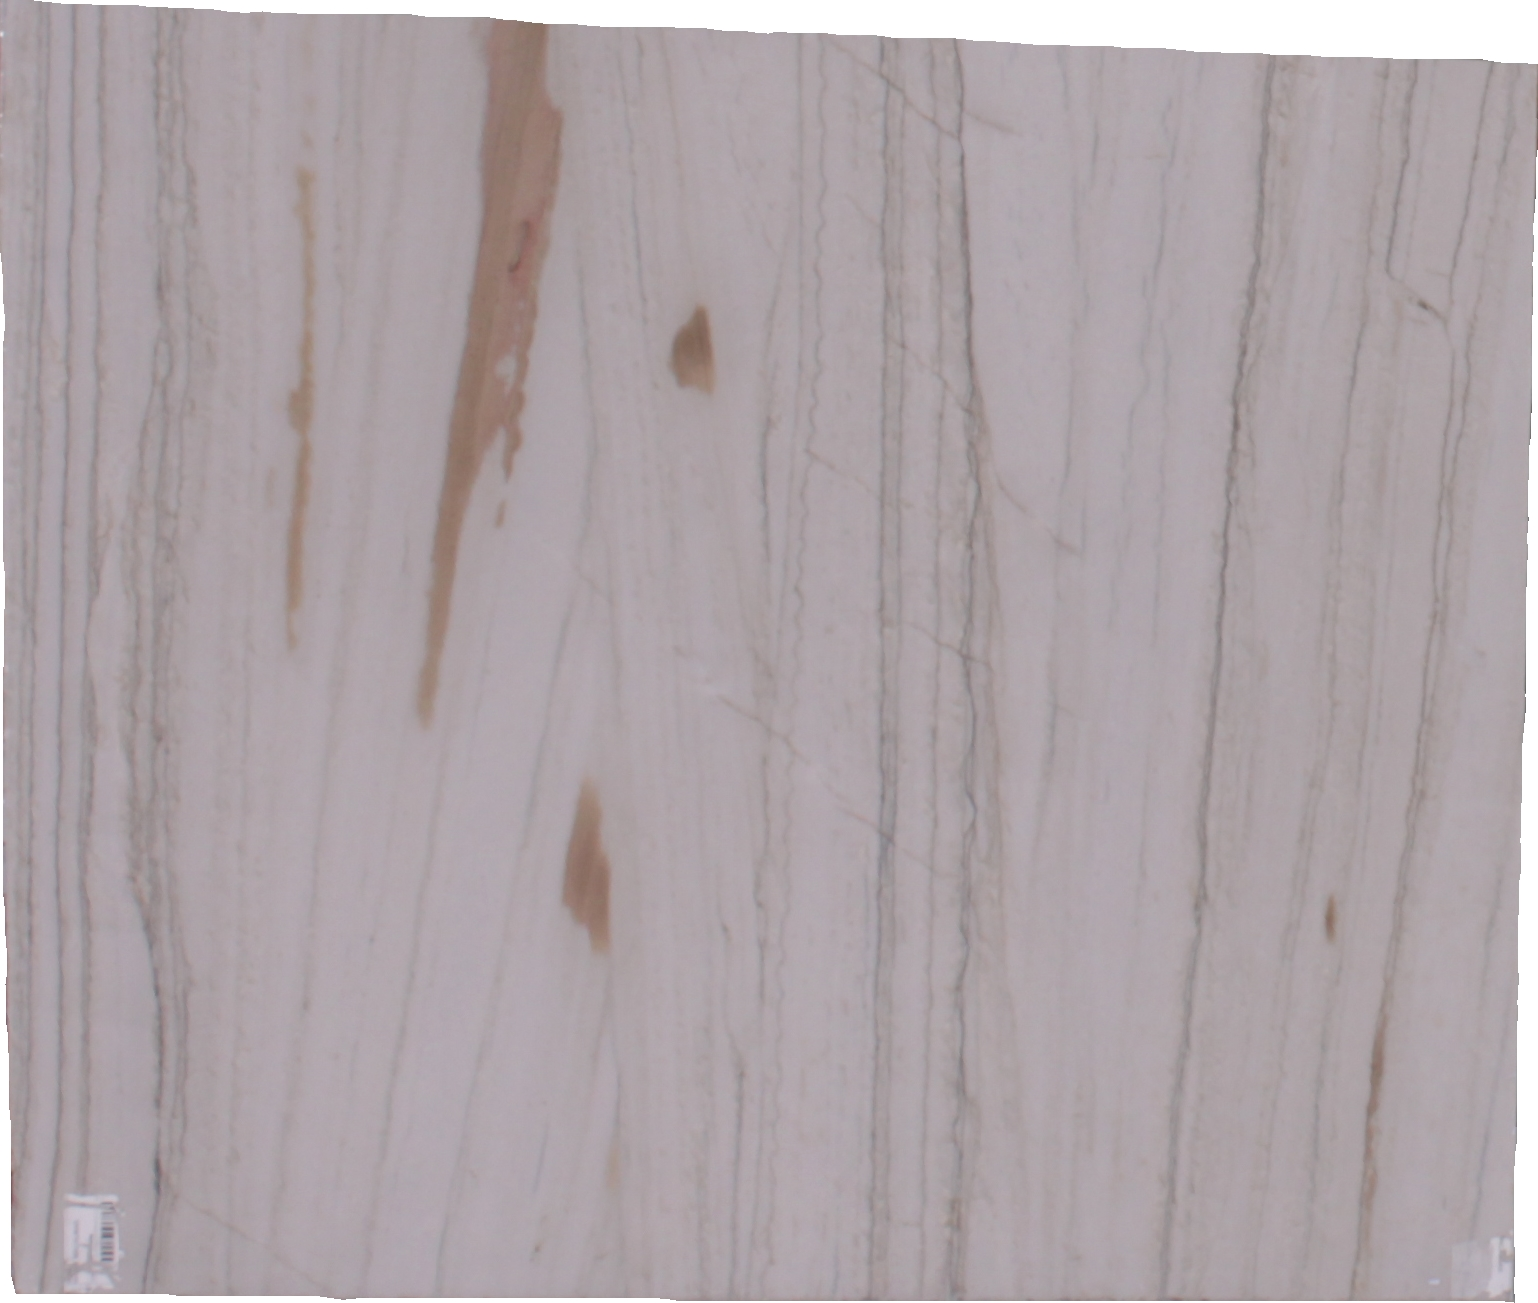 Macaubas Quartzite | White Quartzite | Mother Of Pearl Quartzite